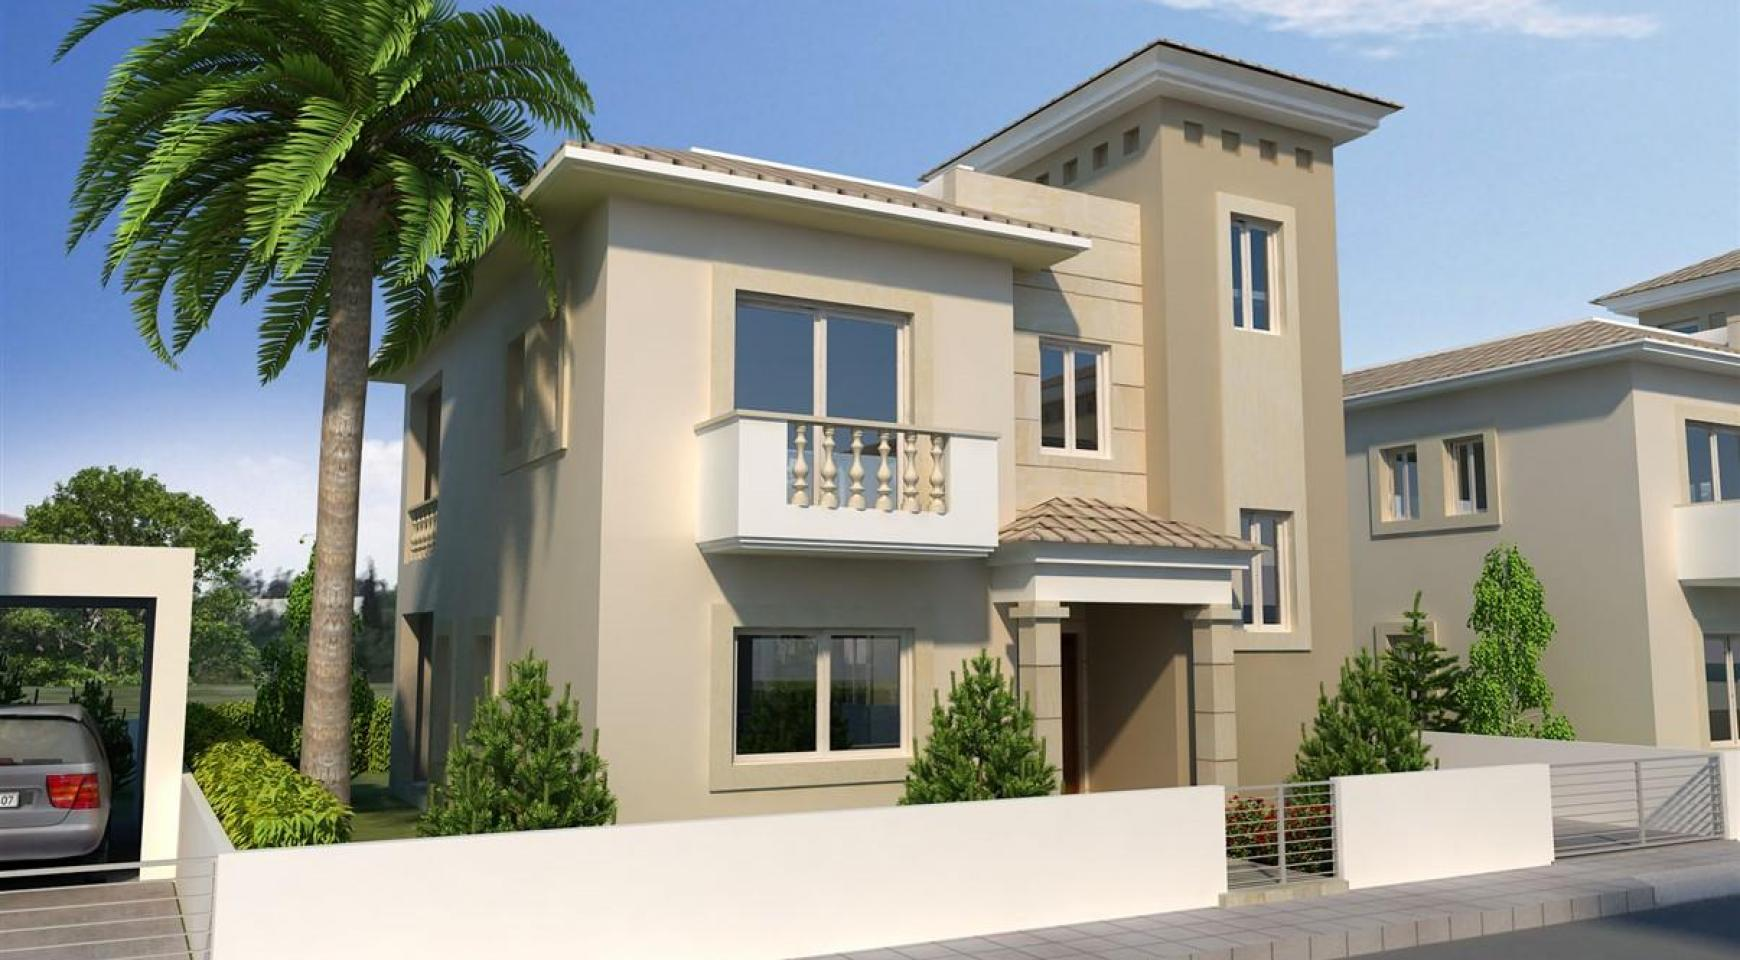 3 Bedroom Villa within a New Project - 17